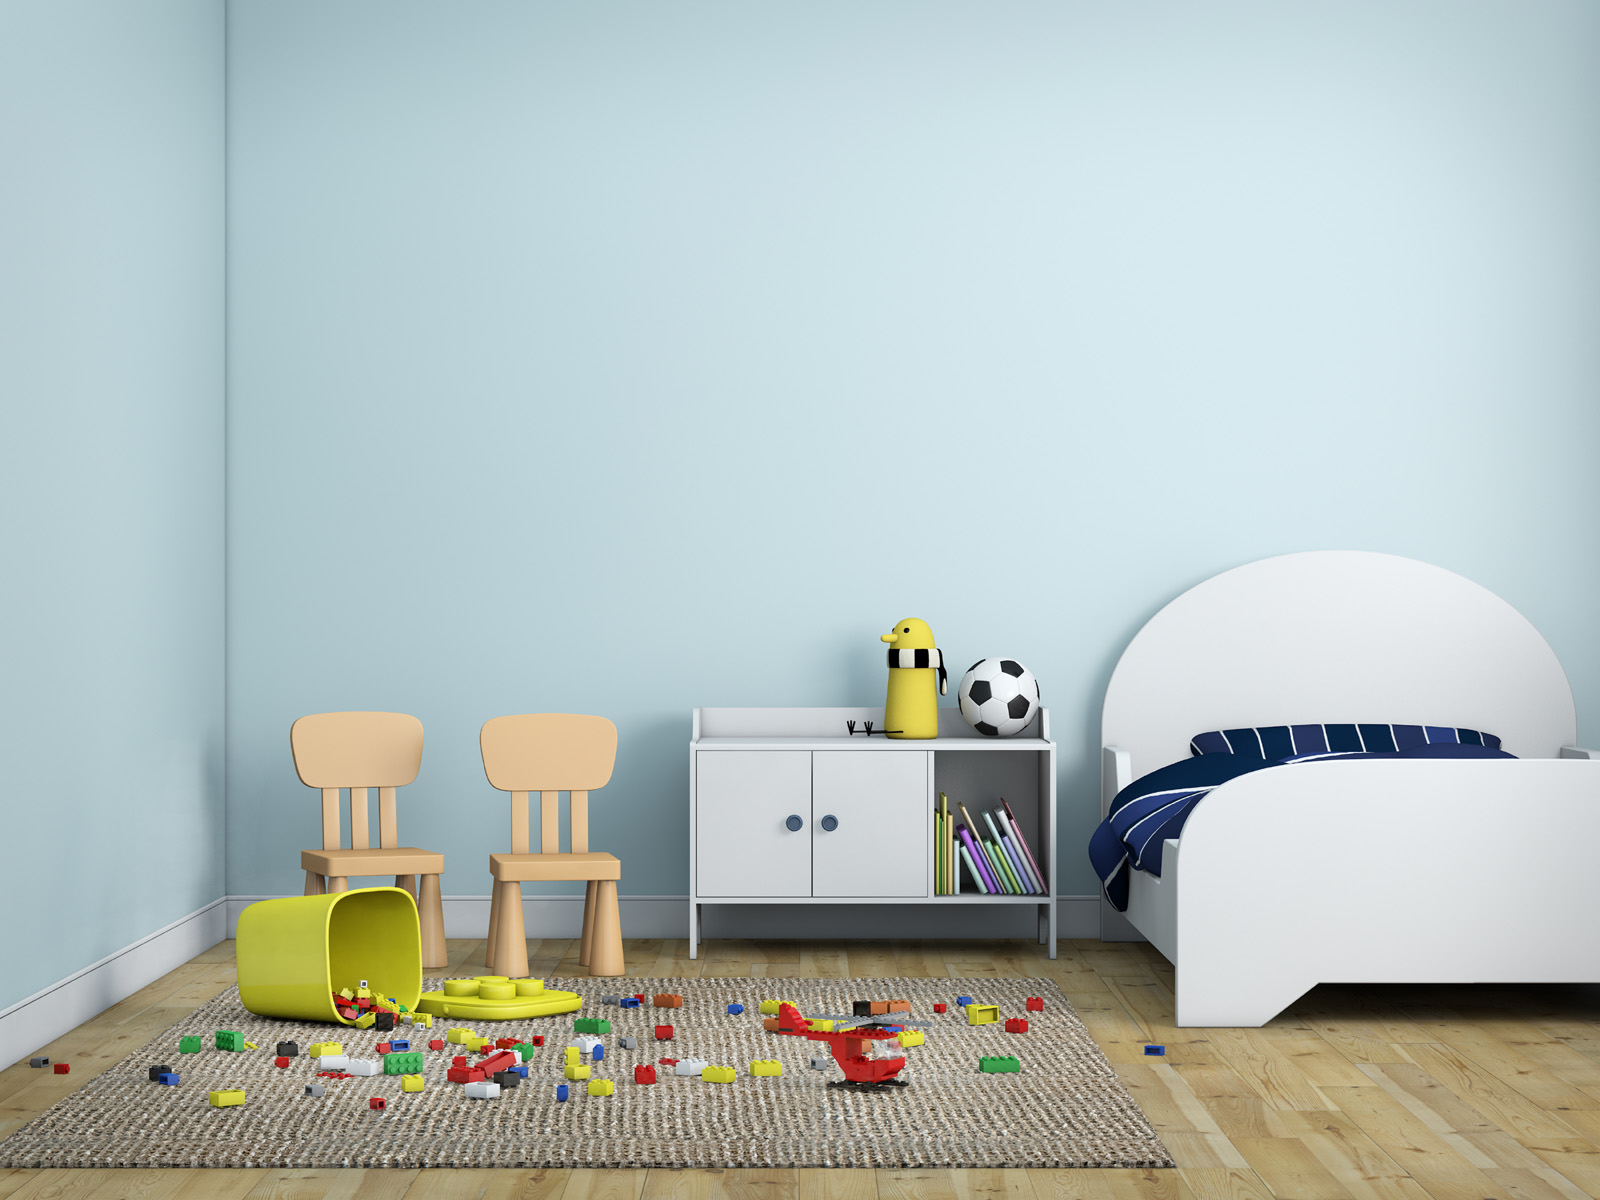 Children's room, bed and toys 51187